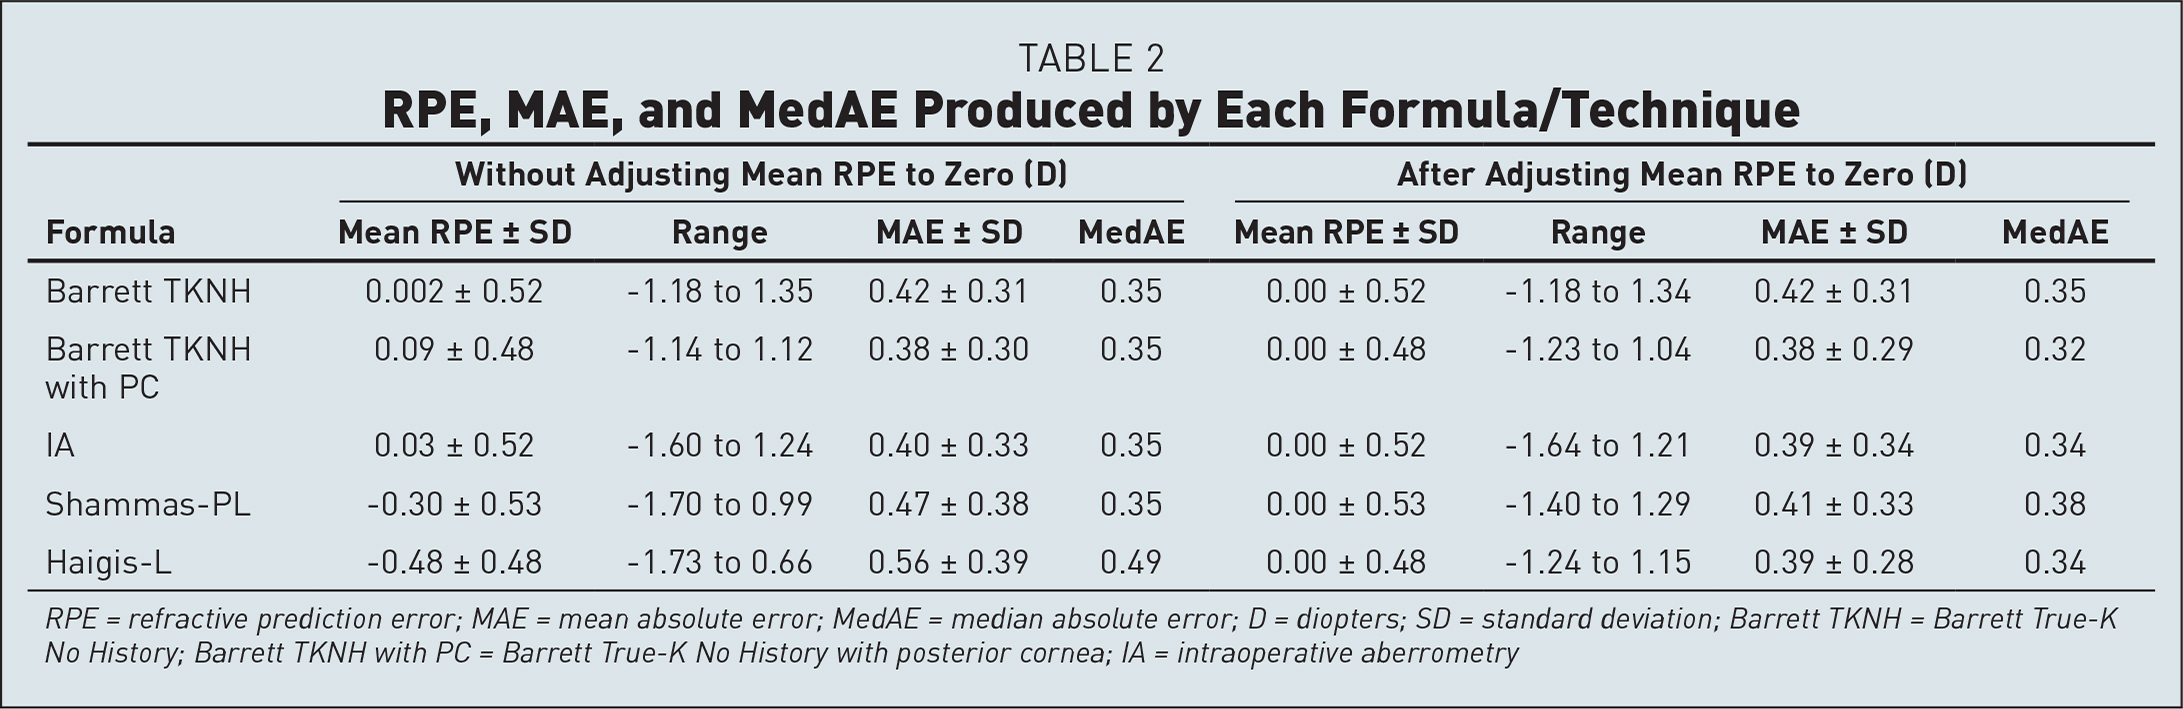 RPE, MAE, and MedAE Produced by Each Formula/Technique